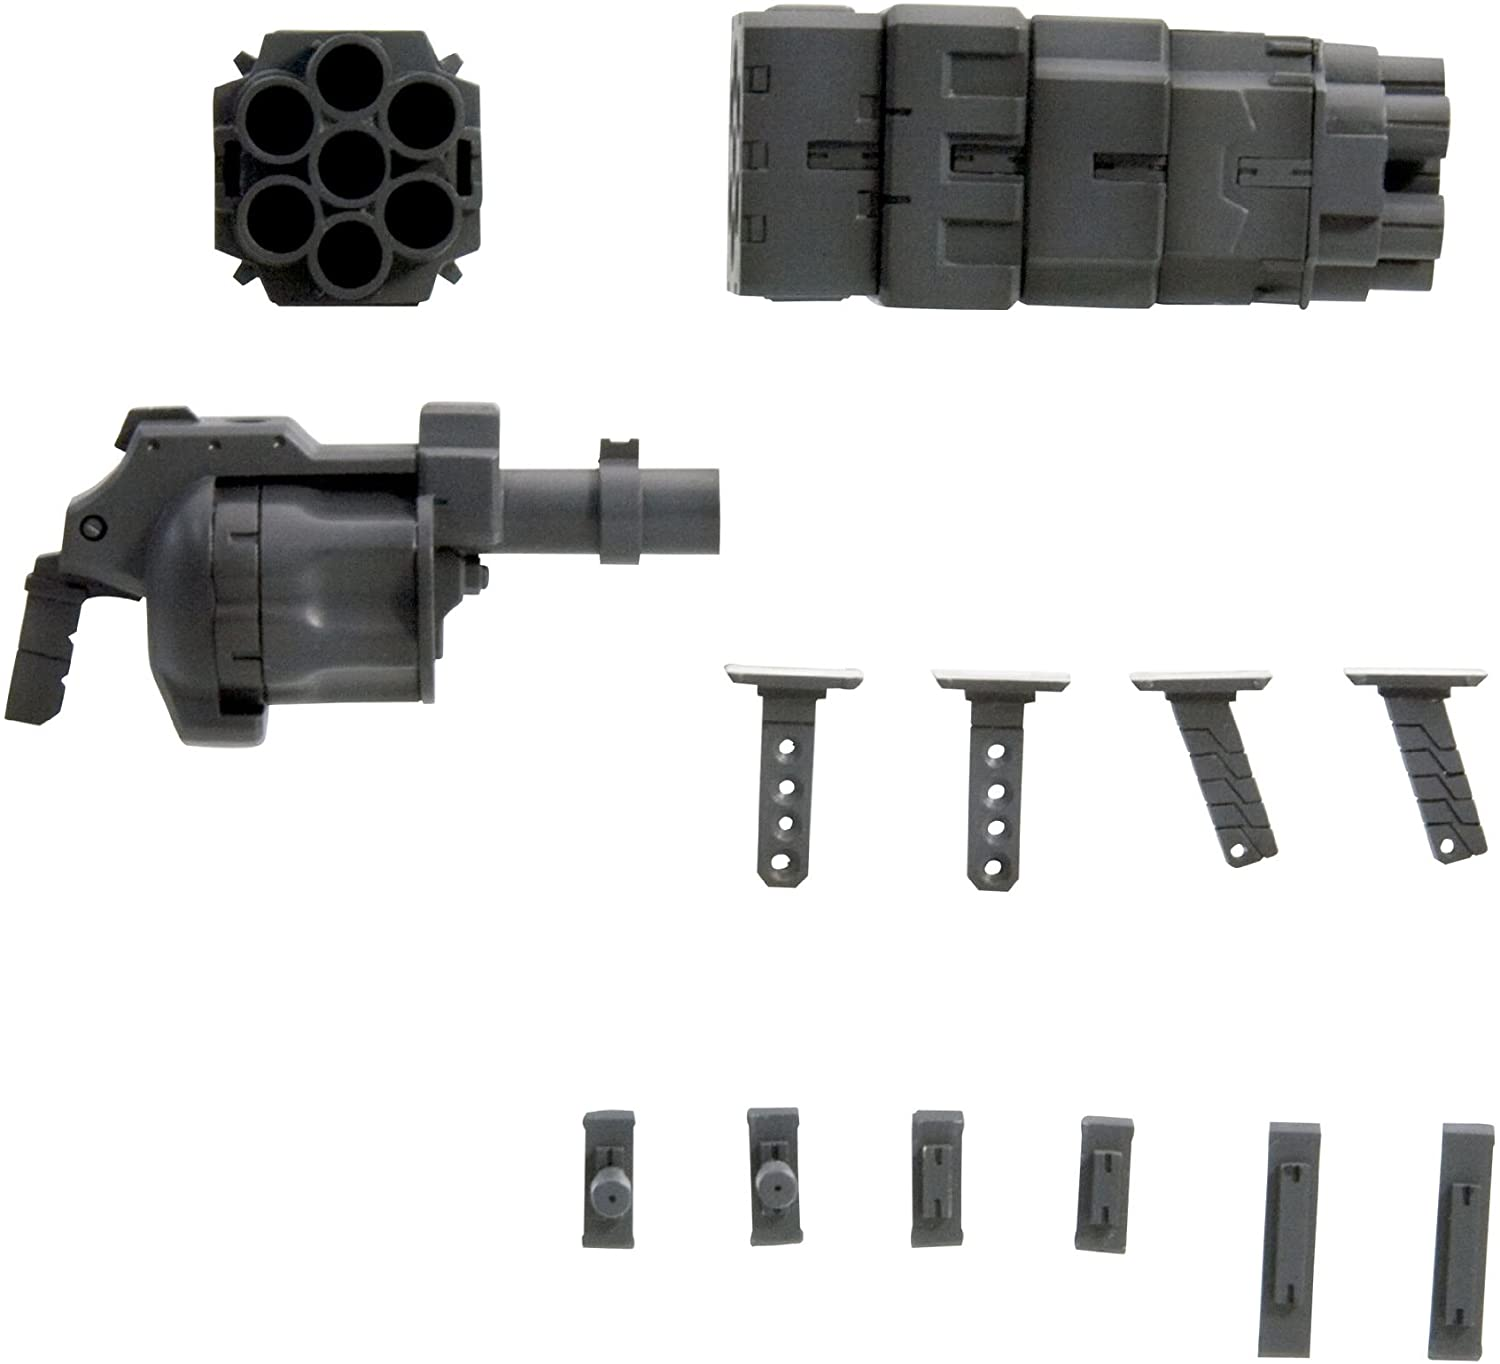 Kotobukiya MSG Weapon Unit 022 Rocket Launcher / Revolver Launcher, 2 Pack